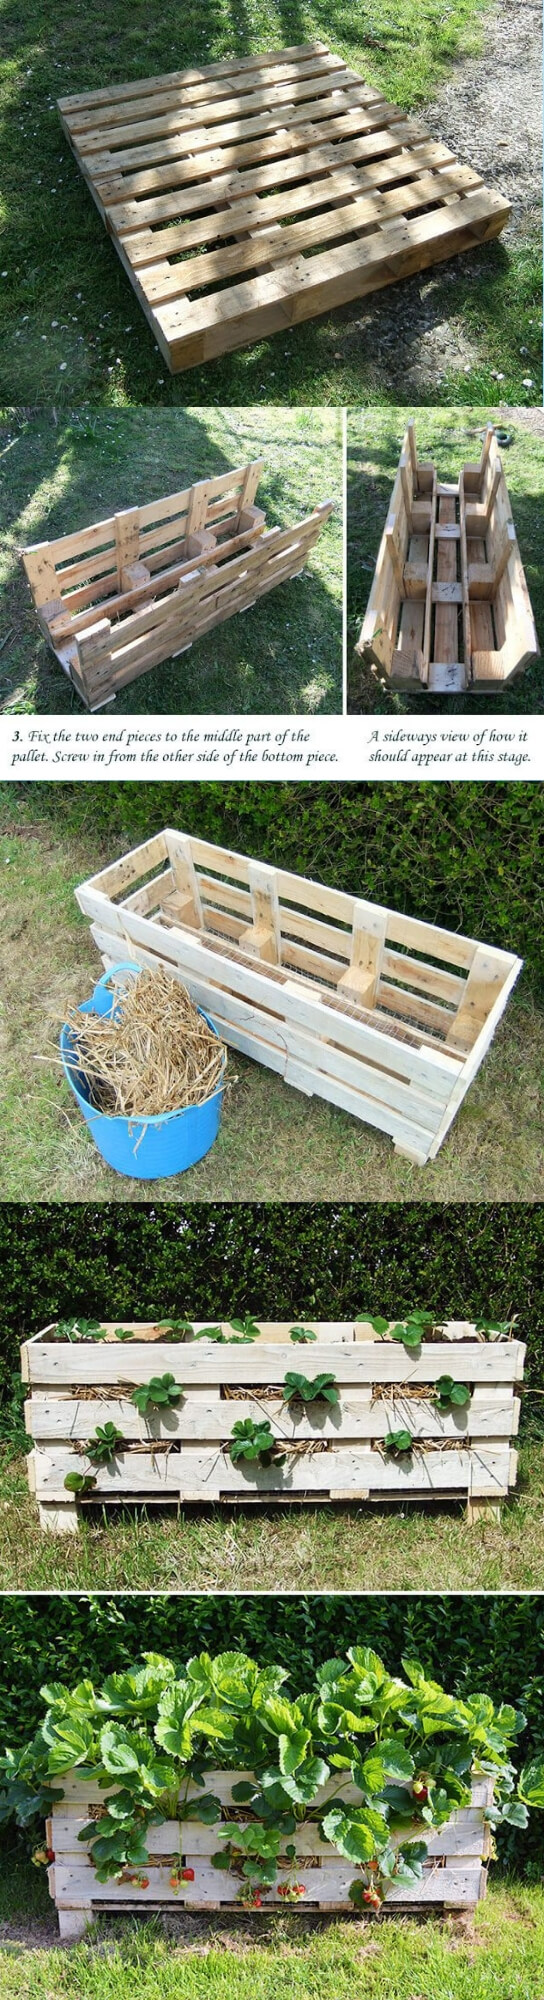 How to use wooden pallet to make strawberry planter